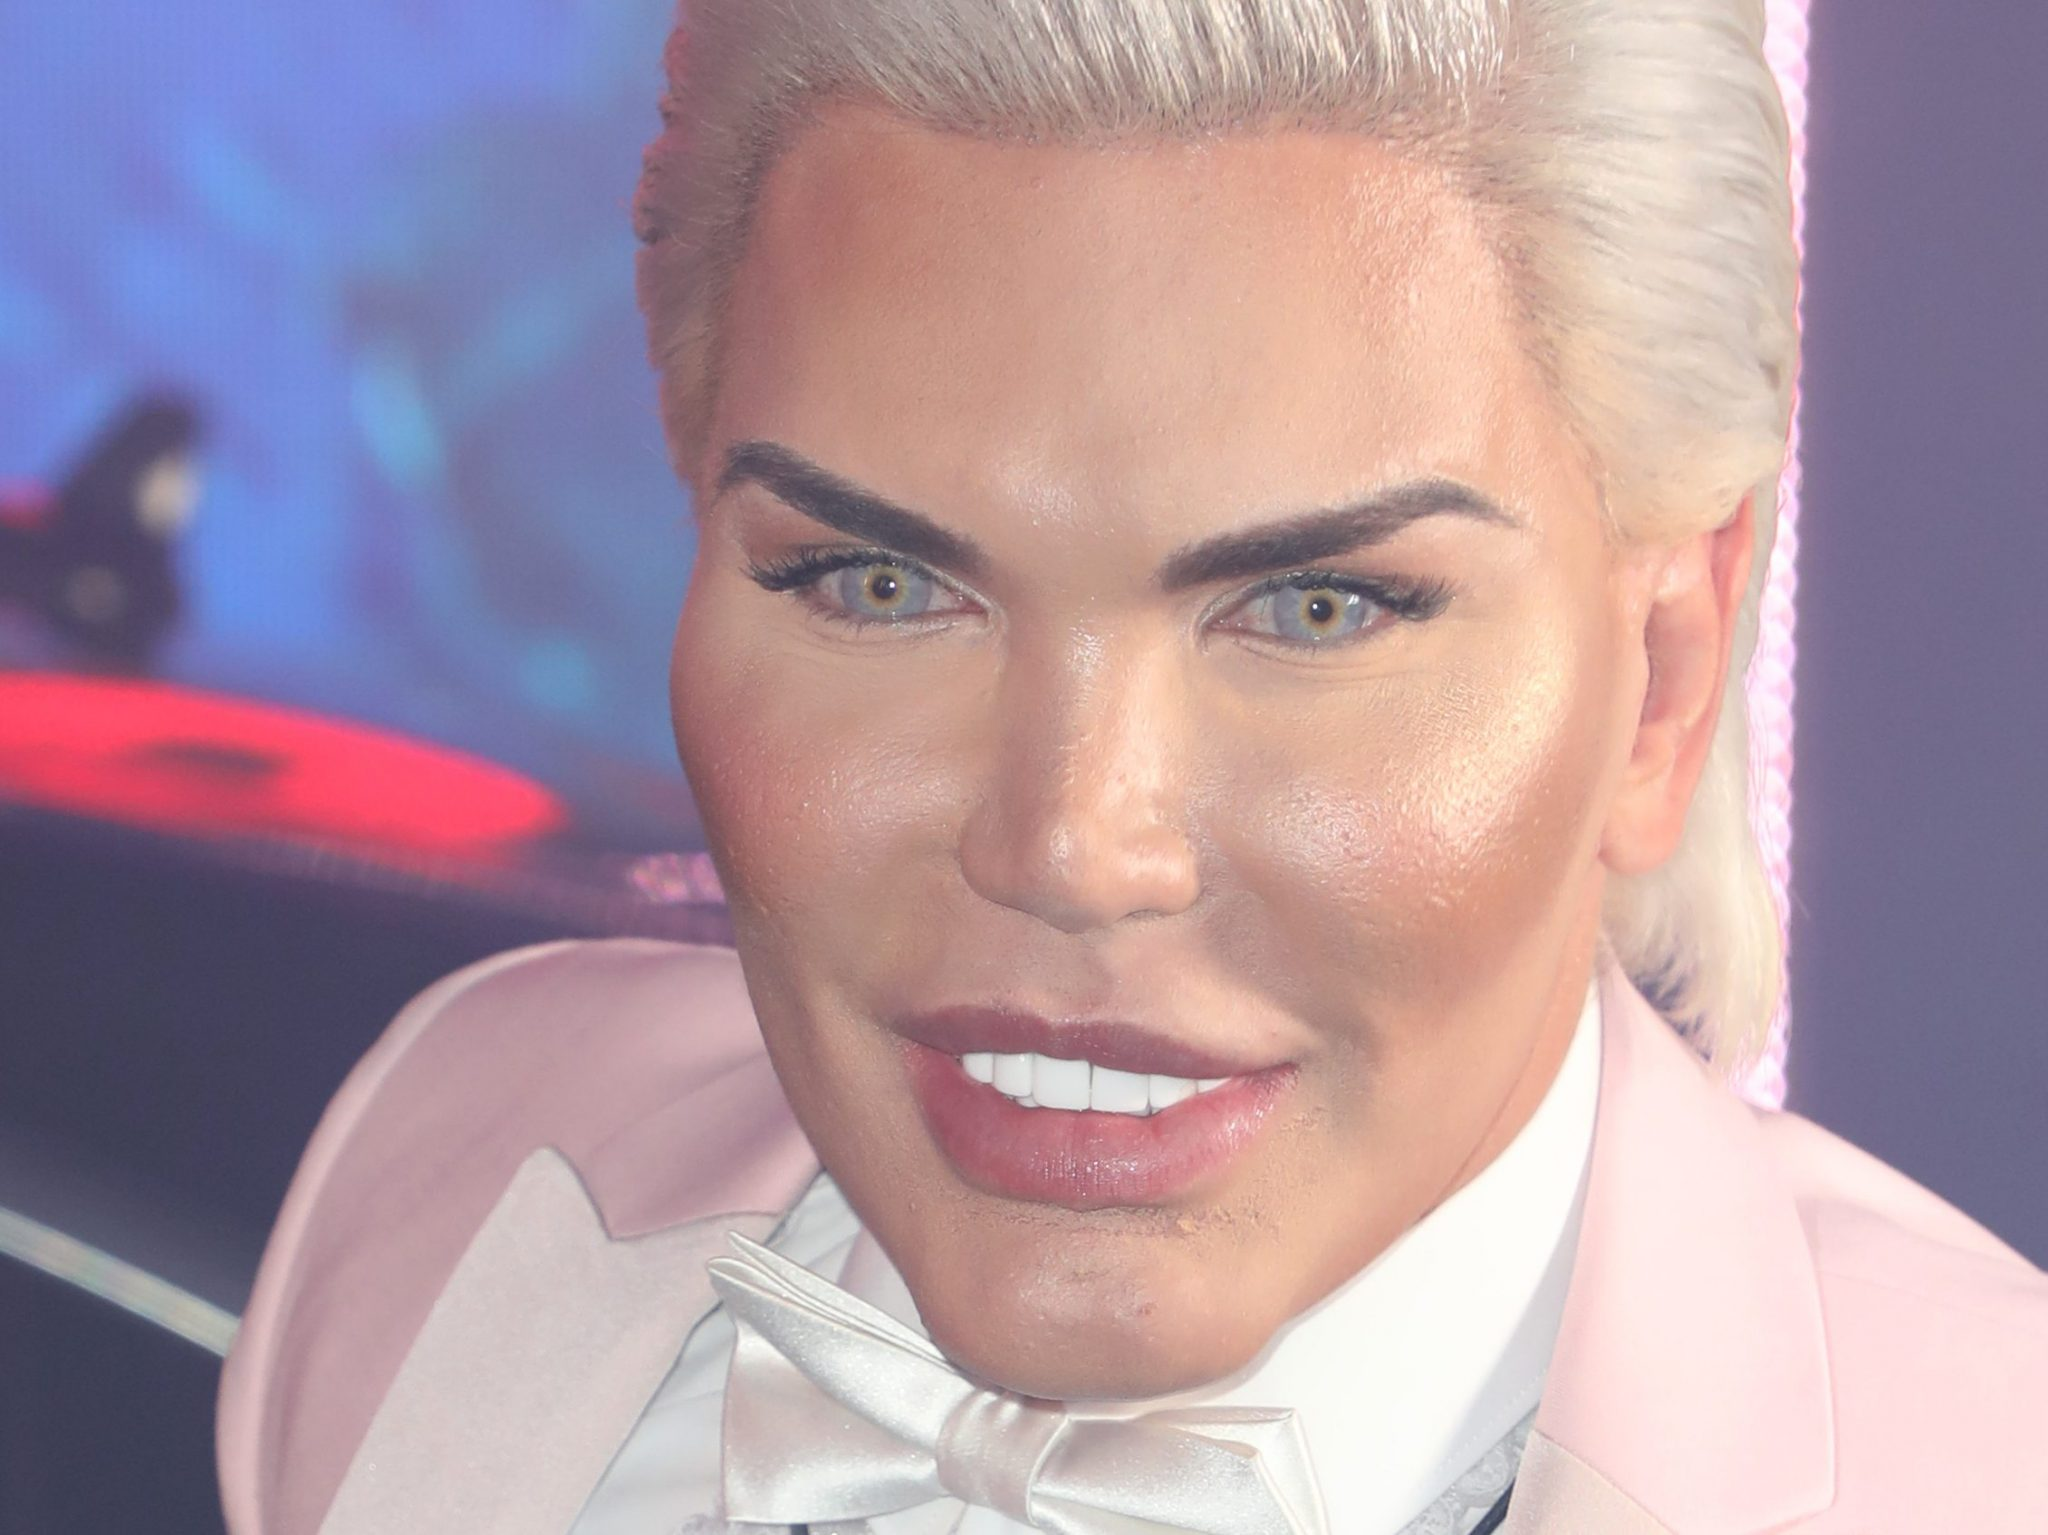 rodrigo-alves-arrestato-ken-umano-passaporto-germania-documenti